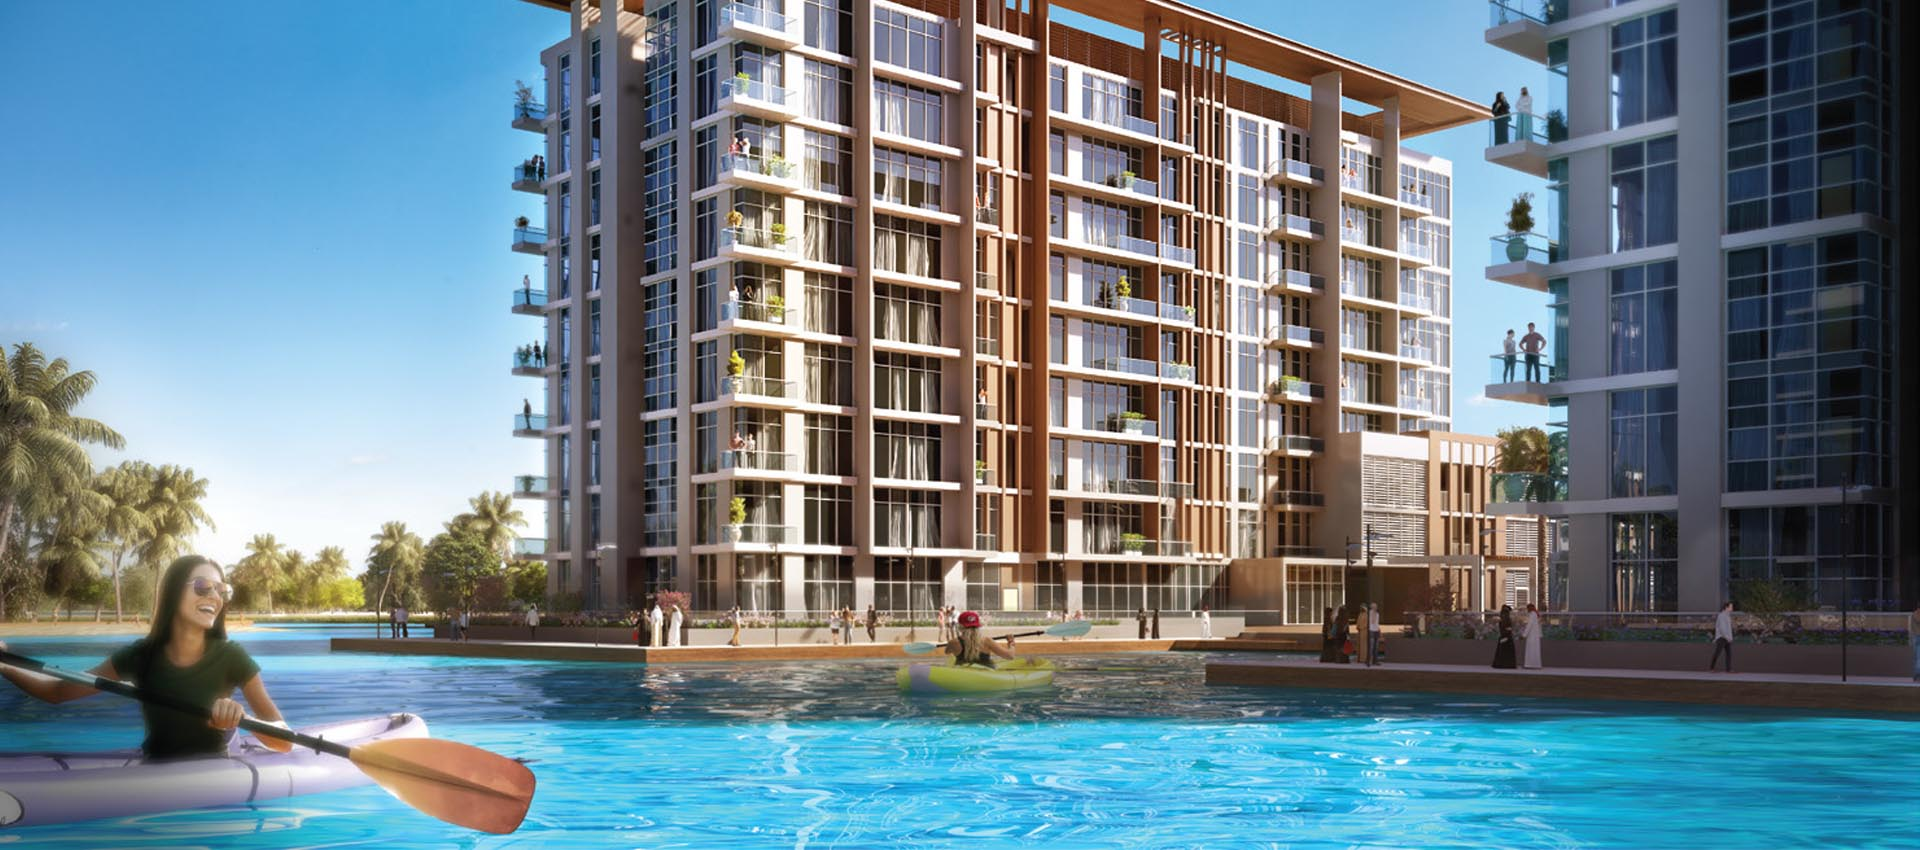 District One Residences 15 at MBR City, Dubai